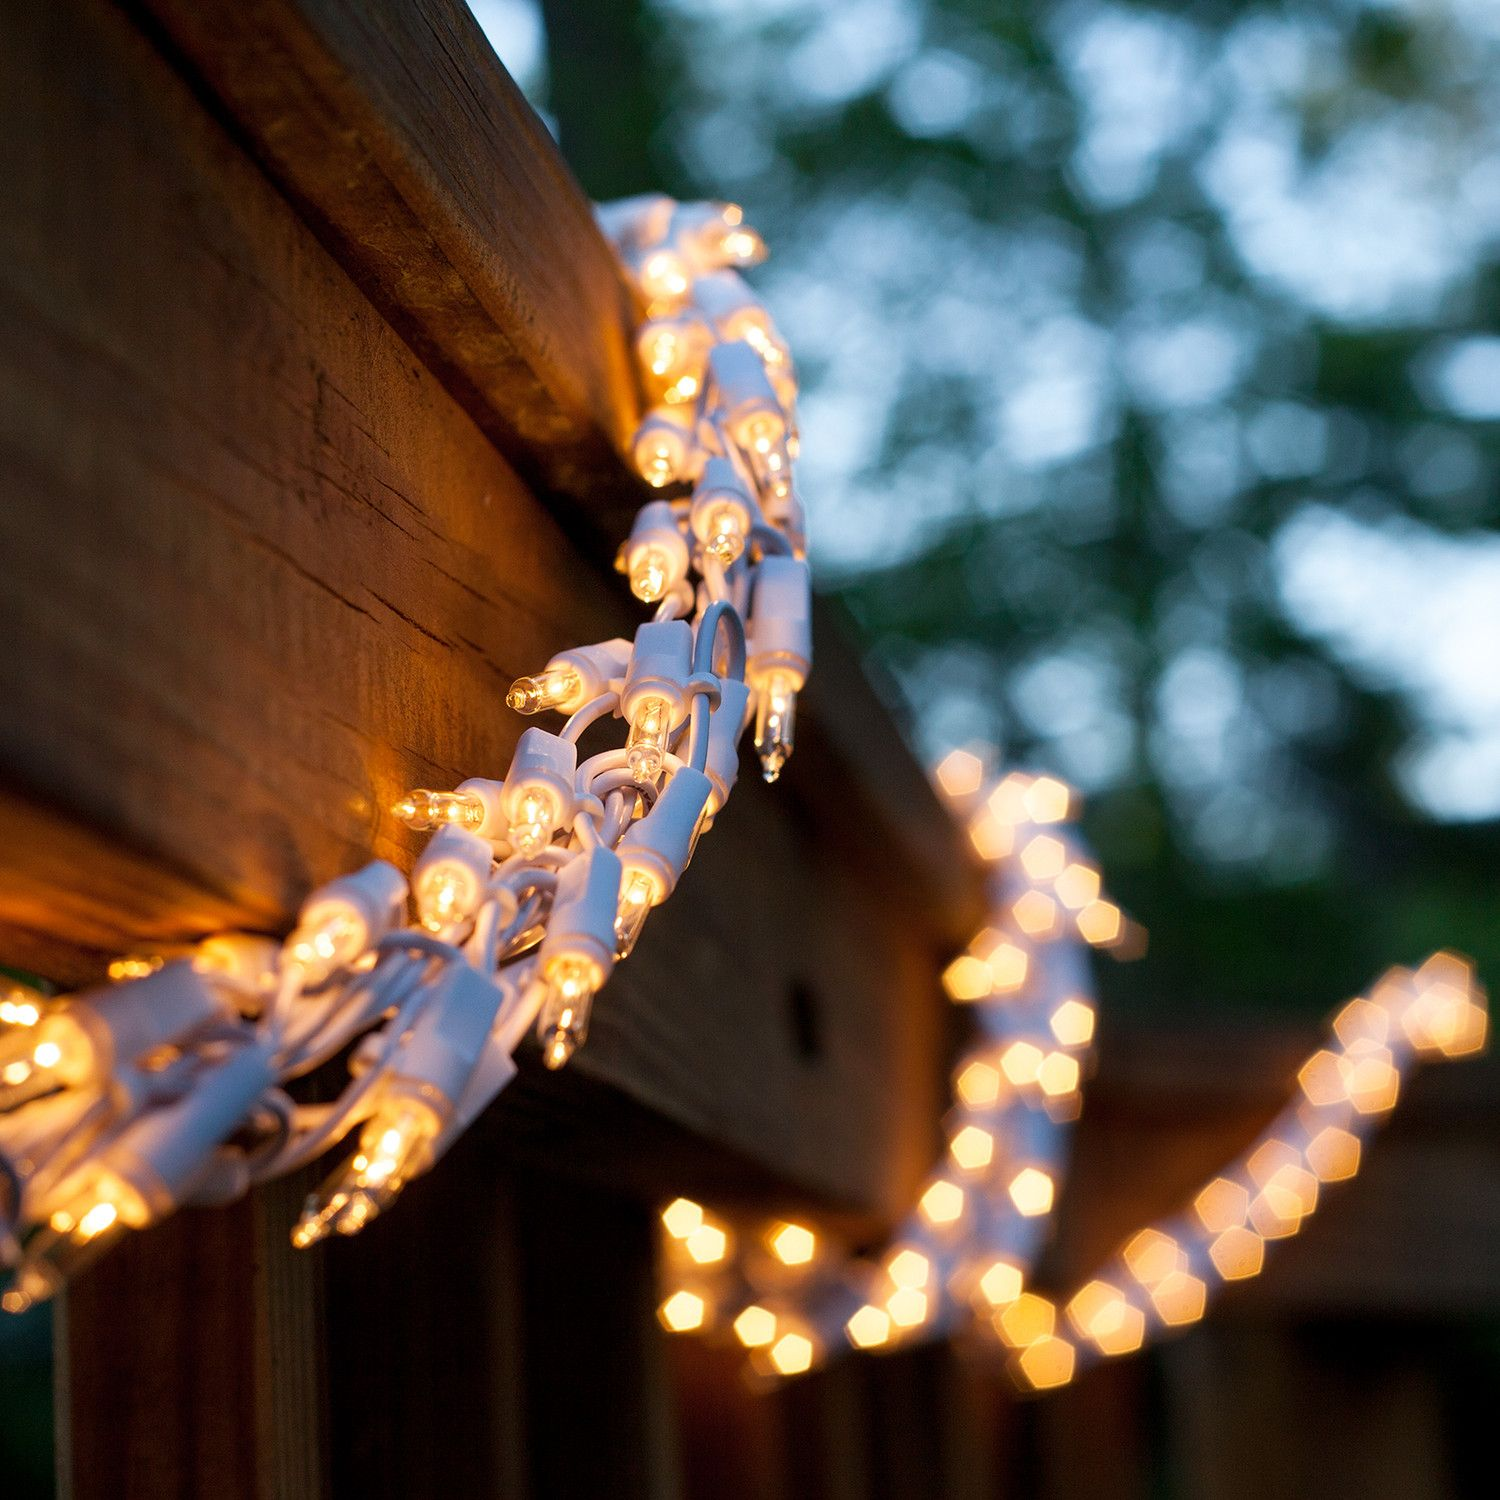 Garland Lights 18 Garland Lights 600 Clear Lamps White Wire Christmas Lights Etc Decorating With Christmas Lights White Wire Christmas Lights Outdoor Christmas Lights